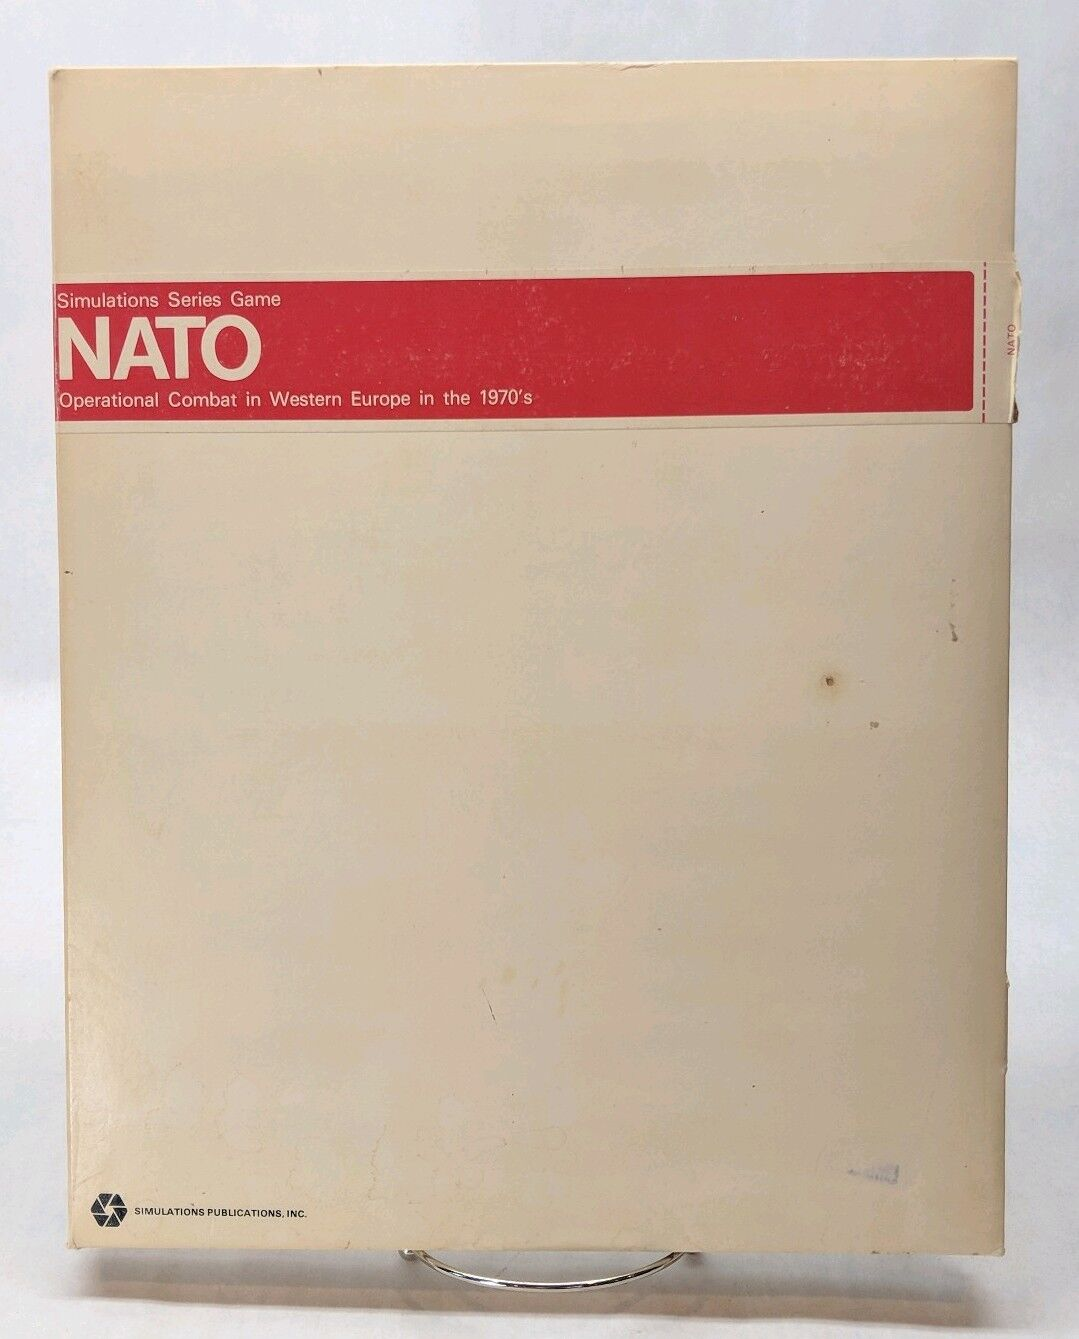 RARE SPI Wargame NATO Operational Combat in Western Europe in the 1970's